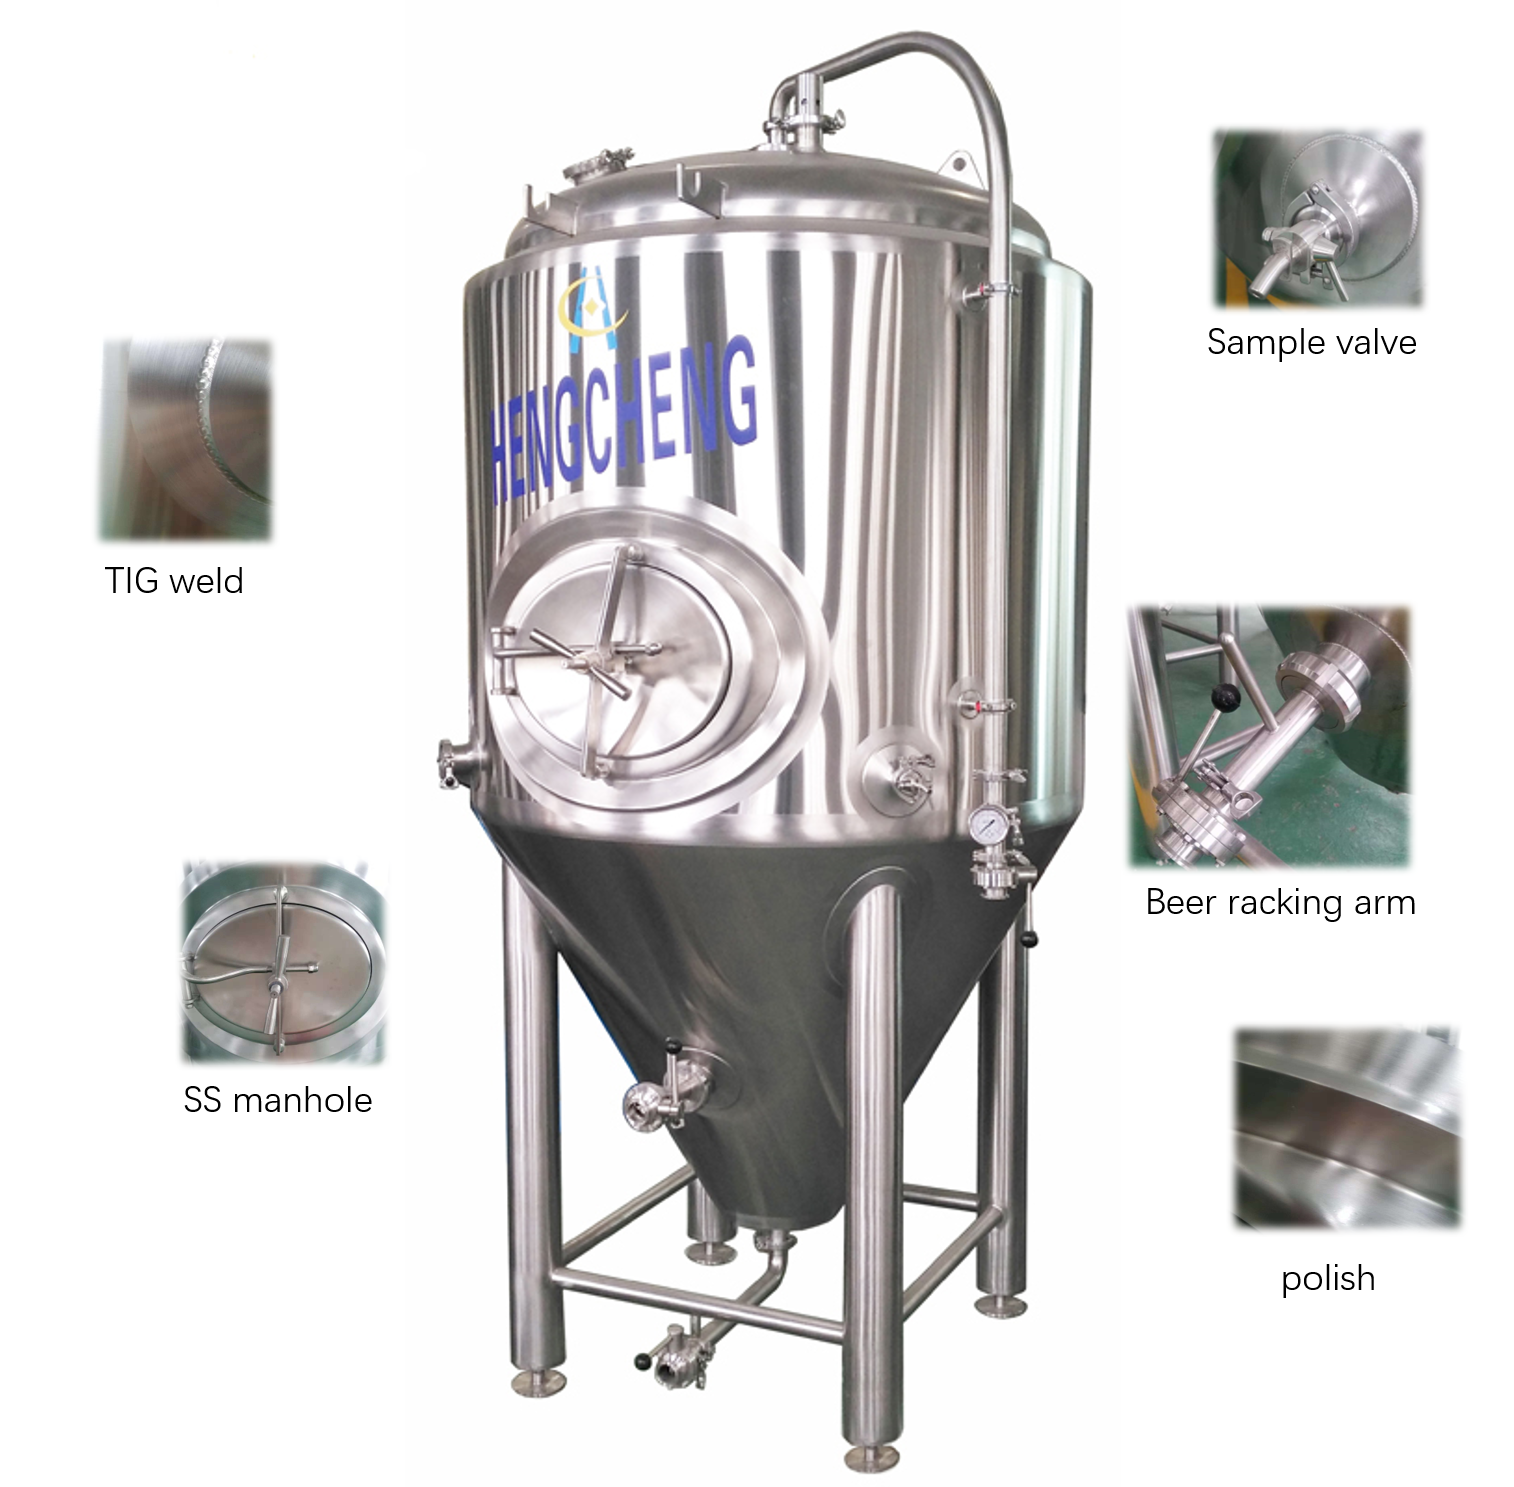 China manufacturer supply high quality stainless steel conical fermenter for sale making craft beer